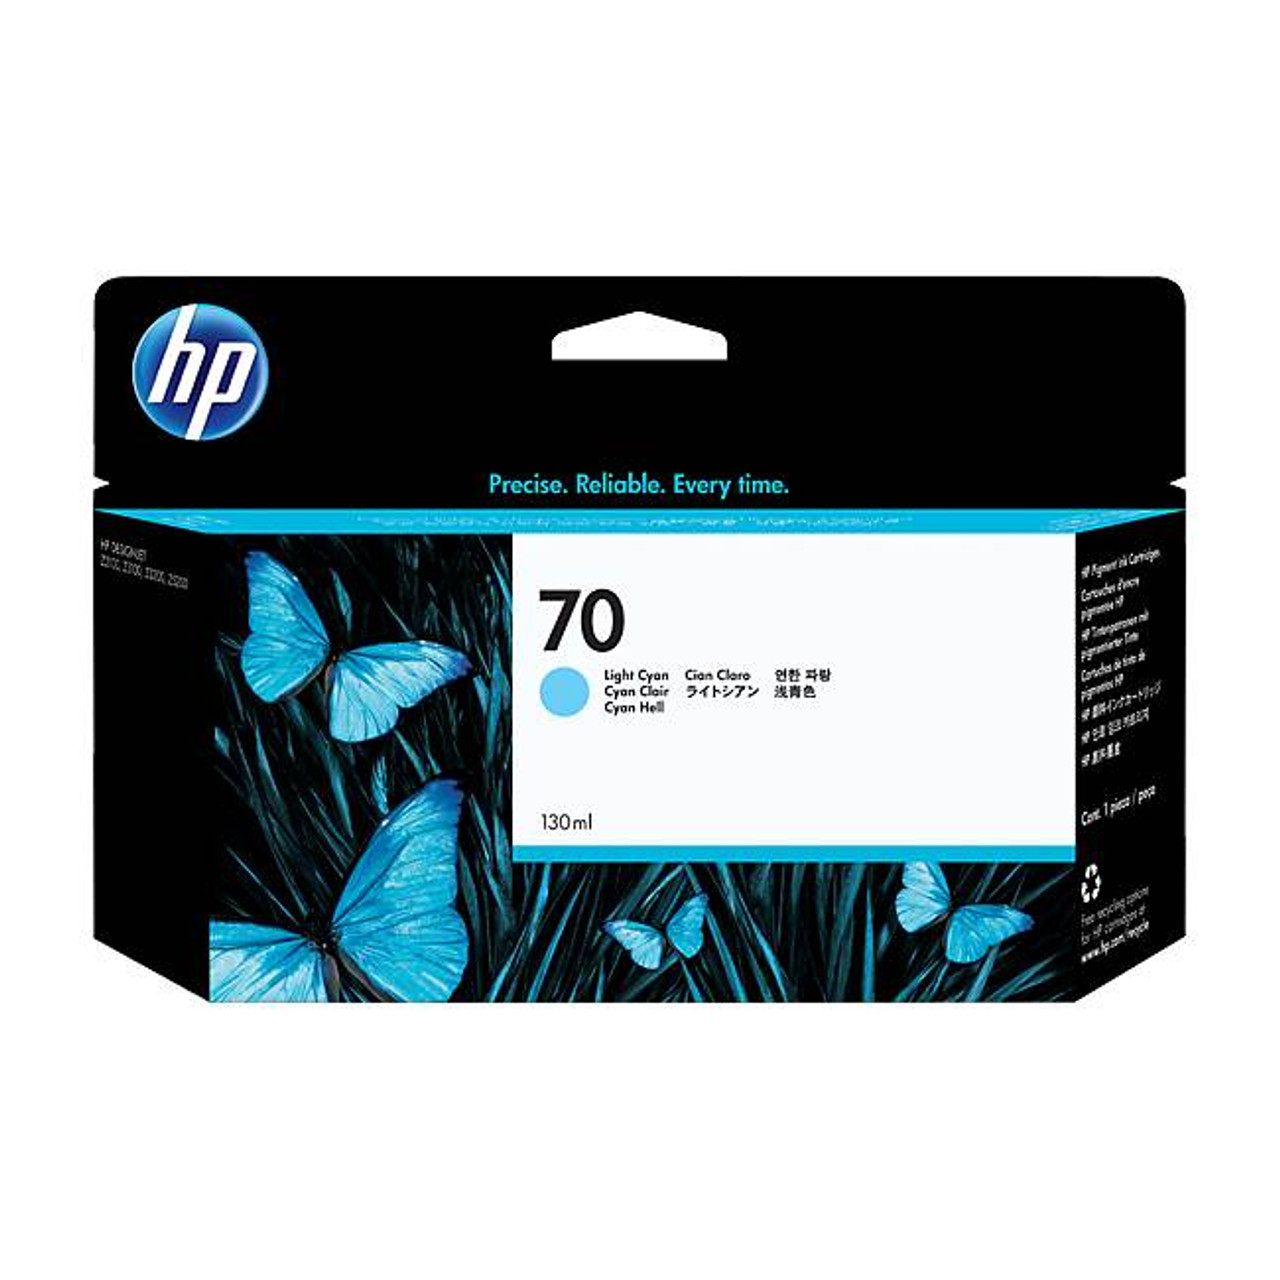 Image for HP 70 130ml Light Cyan Ink Cartridge (C9390A) CX Computer Superstore